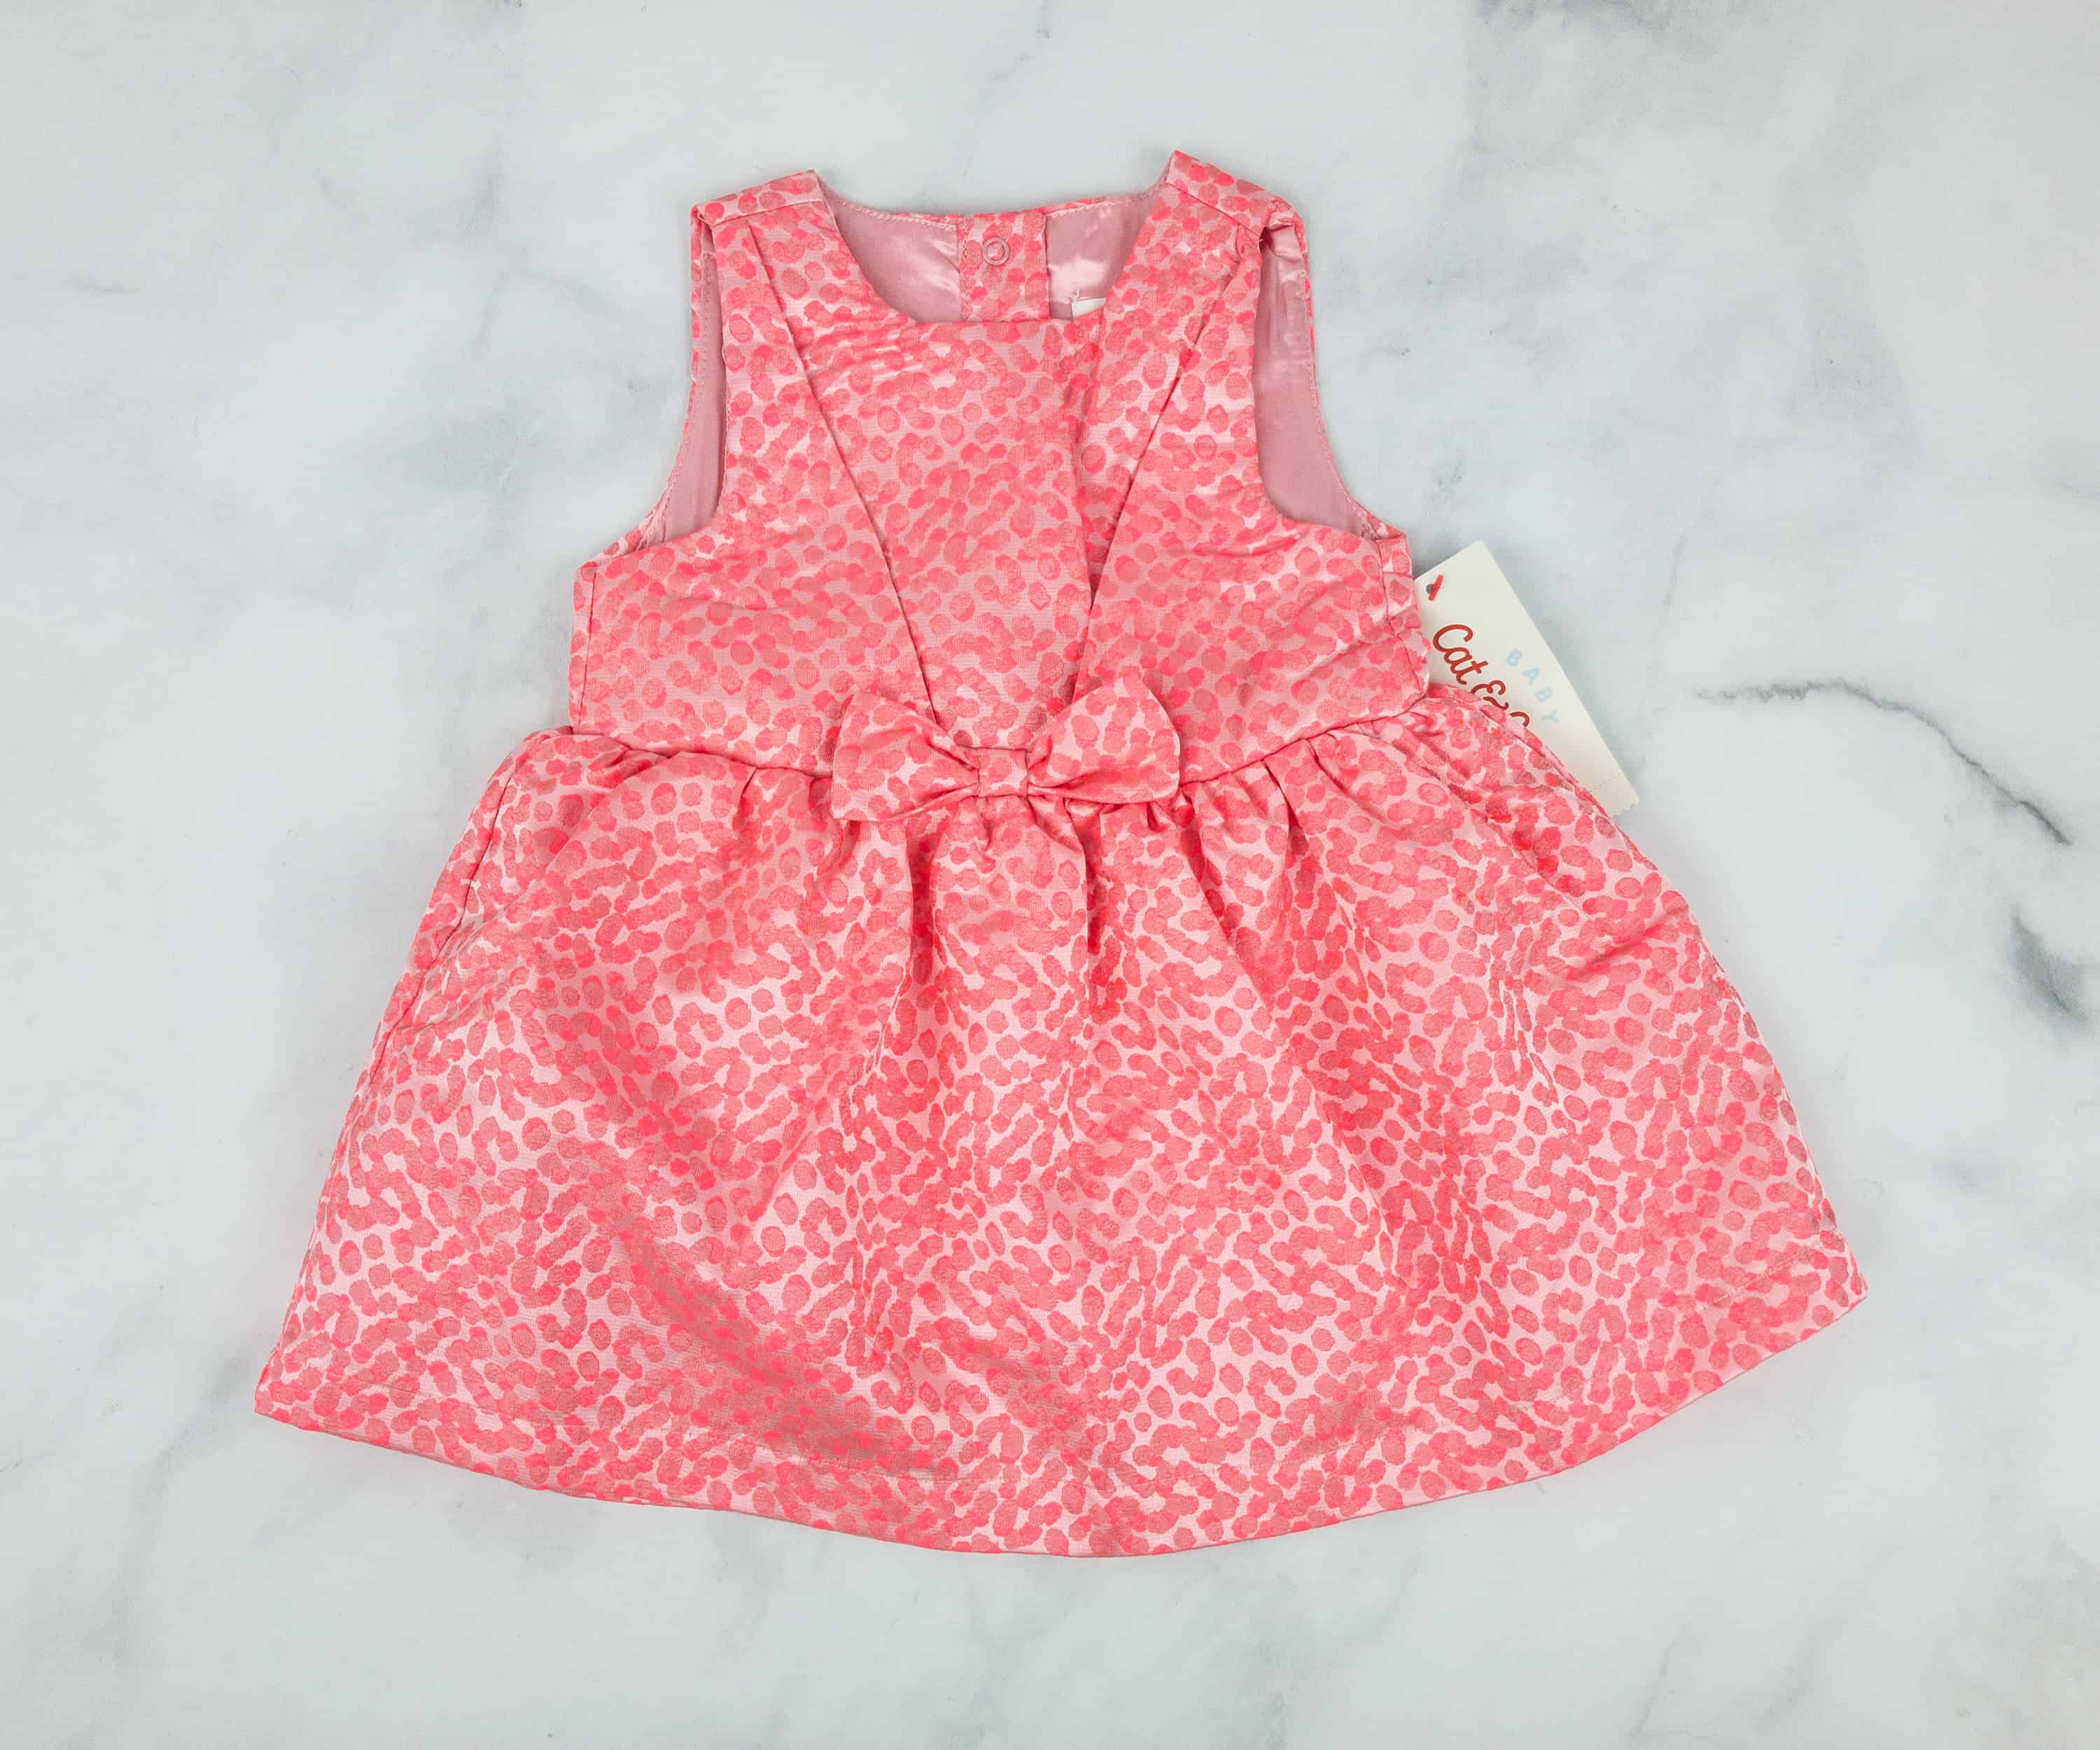 0465f43f8 Cat & Jack Baby Girl Dress Set. This little baby dress in salmon pink is so  dainty! It seems like the perfect outfit for special occasions too.